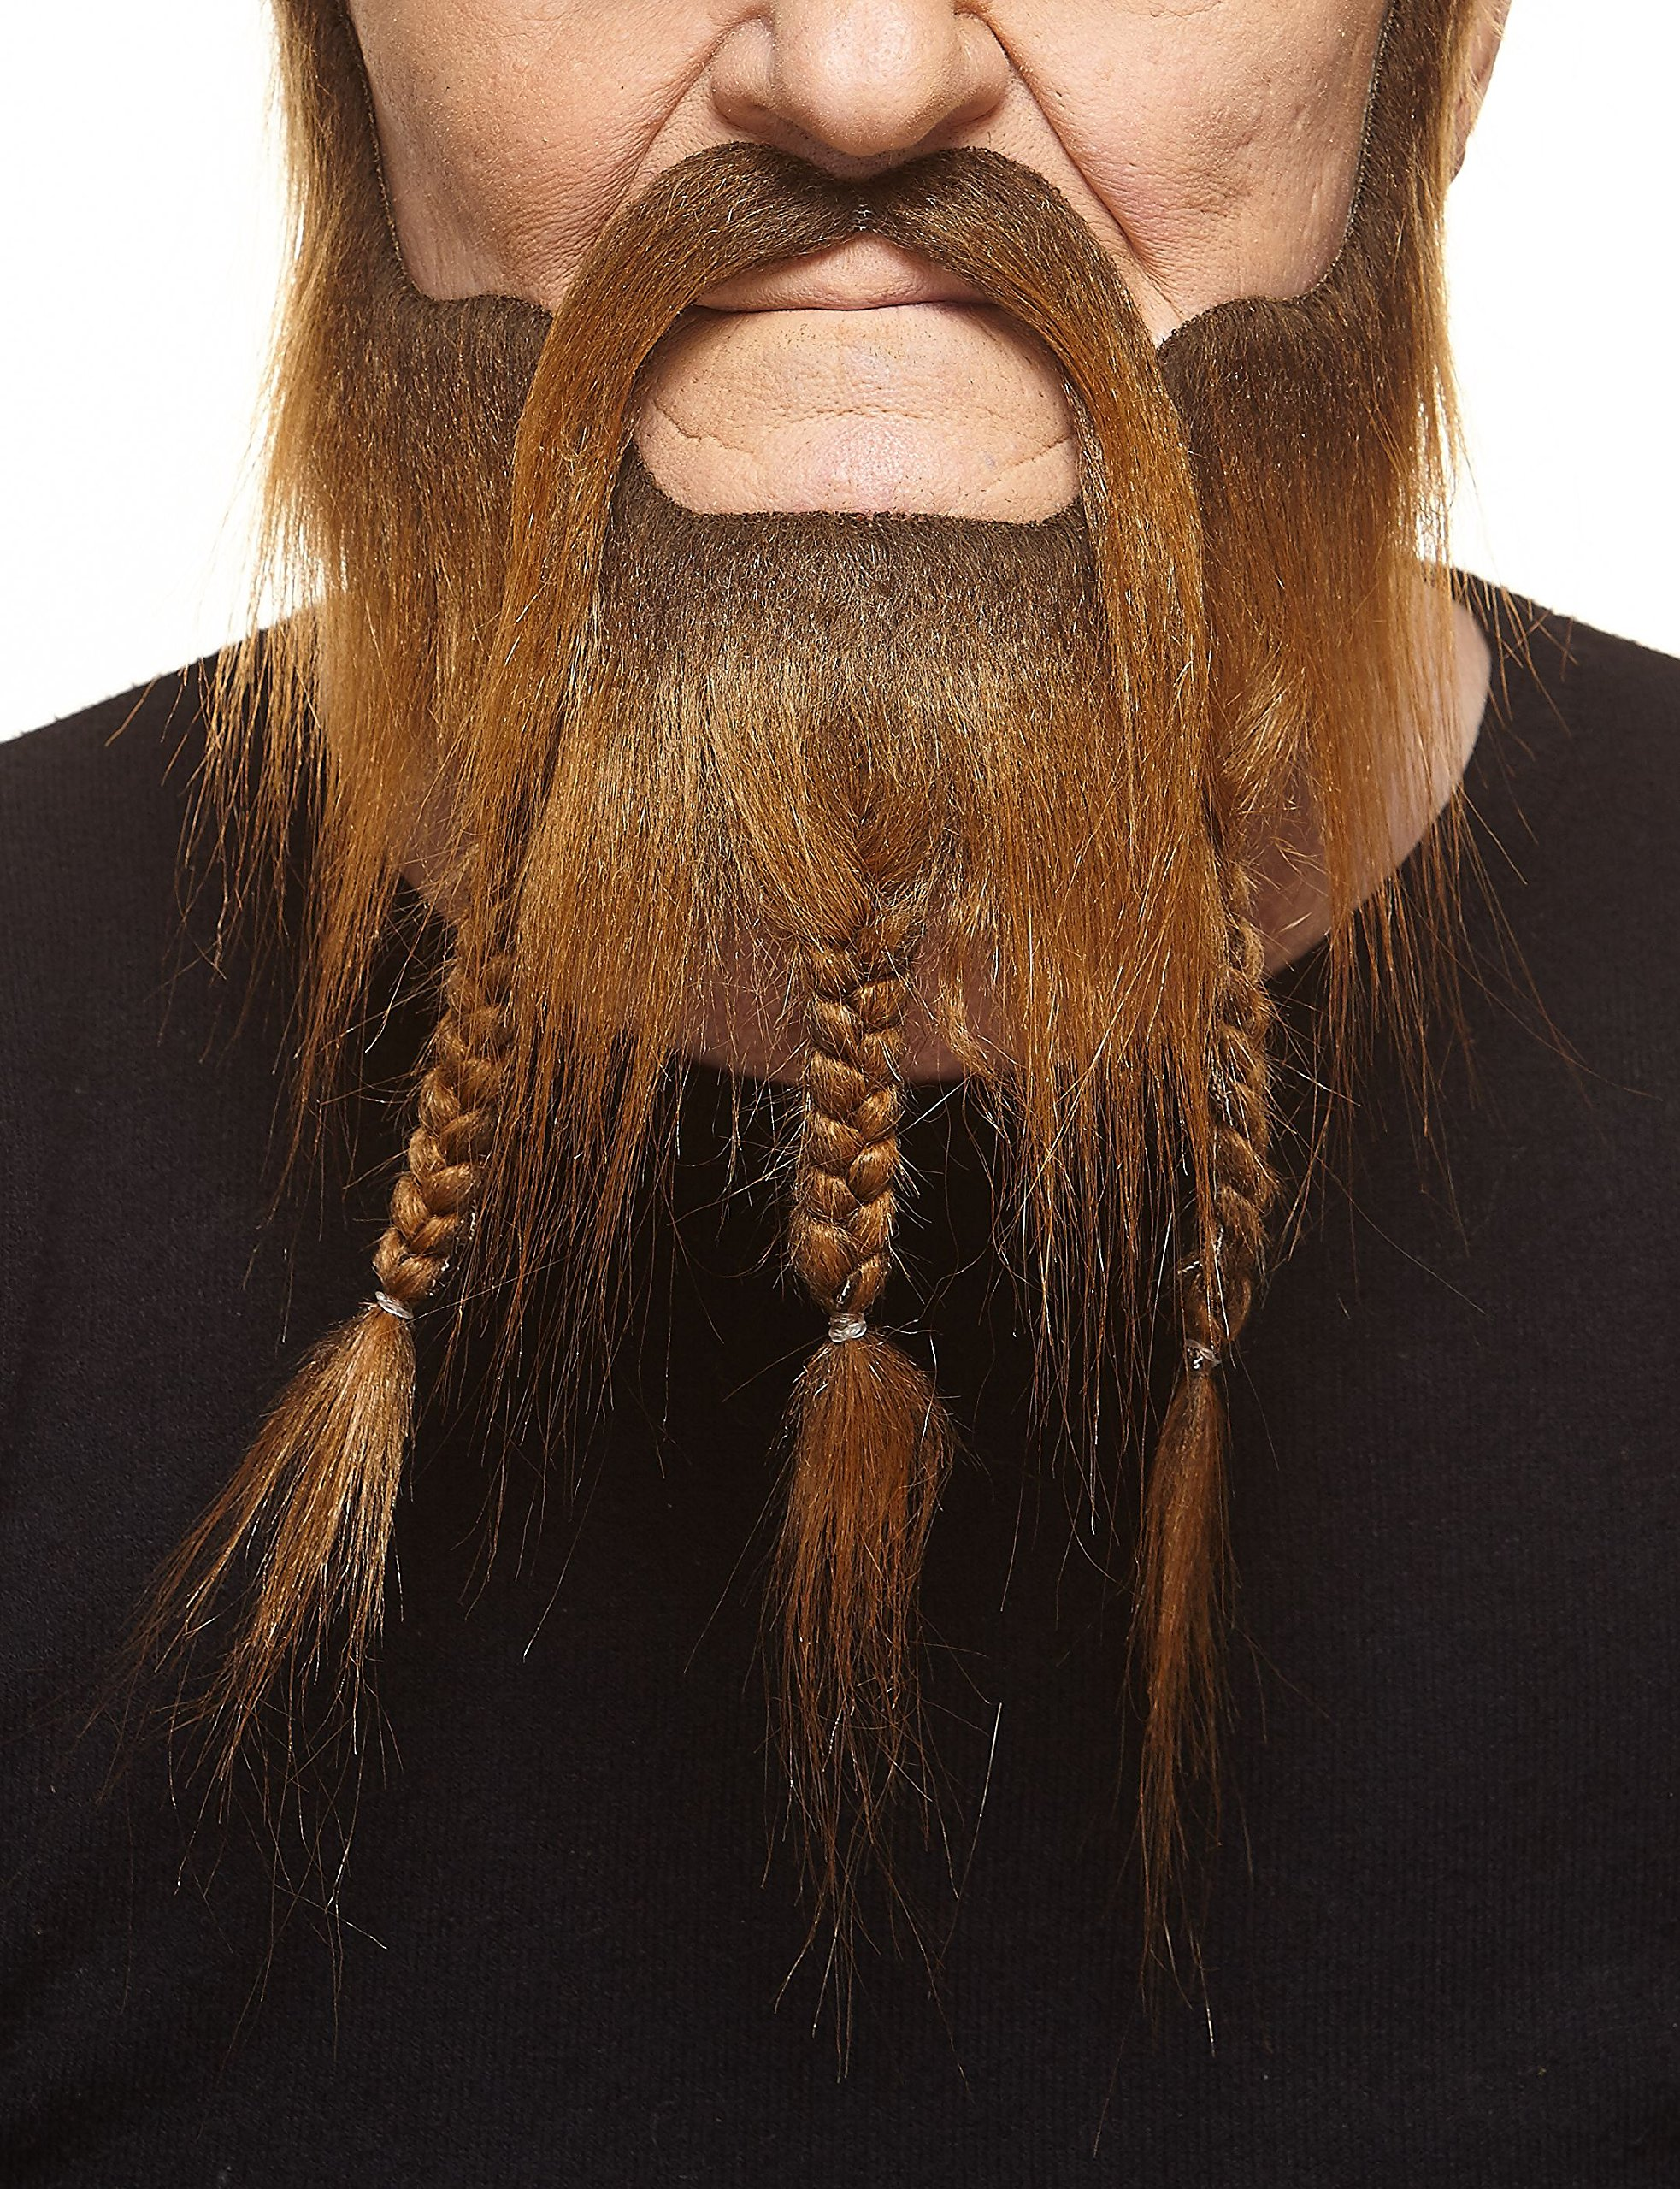 Mustaches Self Adhesive, Novelty, Braided, Fake Captain Beard and, Brown Color